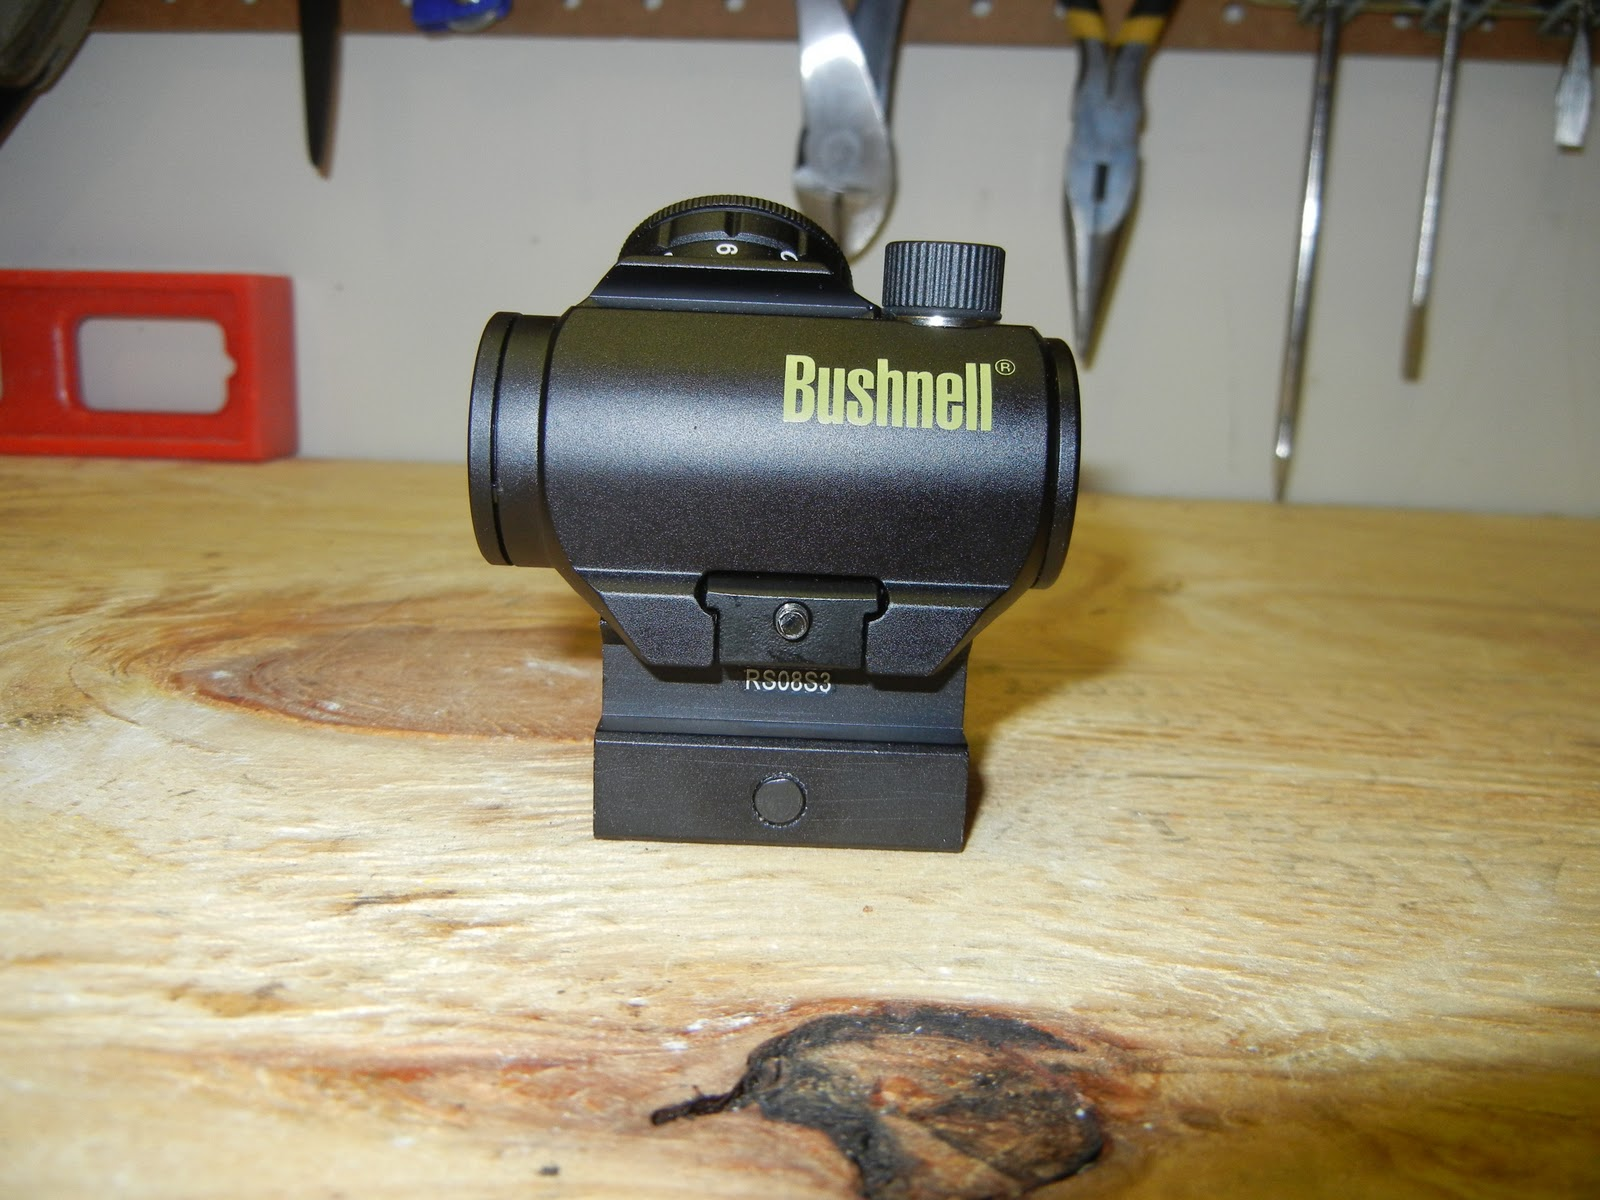 Bushnell TRS-25 Micro Red Dot Sight Review